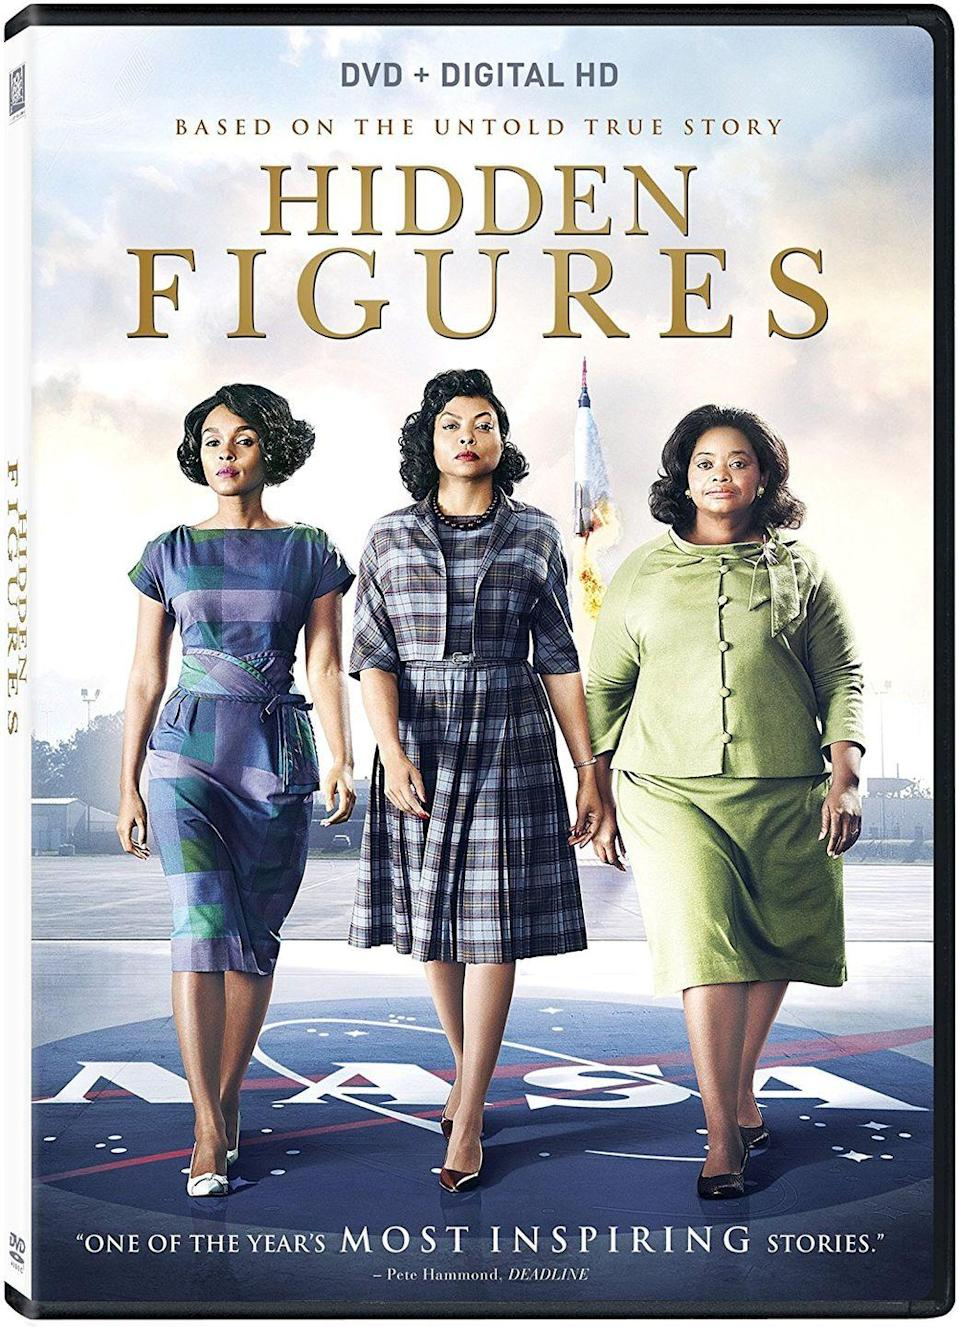 """<p><a class=""""link rapid-noclick-resp"""" href=""""https://www.amazon.com/Hidden-Figures-Taraji-P-Henson/dp/B01LTI1RHG/?tag=syn-yahoo-20&ascsubtag=%5Bartid%7C10063.g.35716832%5Bsrc%7Cyahoo-us"""" rel=""""nofollow noopener"""" target=""""_blank"""" data-ylk=""""slk:Watch Now"""">Watch Now</a> </p><p>Katherine Johnson, Dorothy Vaughan, and Mary Jackson fight widespread, systematic discrimination to continue their work as human computers at NASA in the 1960s, playing a vital—and previously unsung—role in the effort to send astronauts into space.<br></p>"""